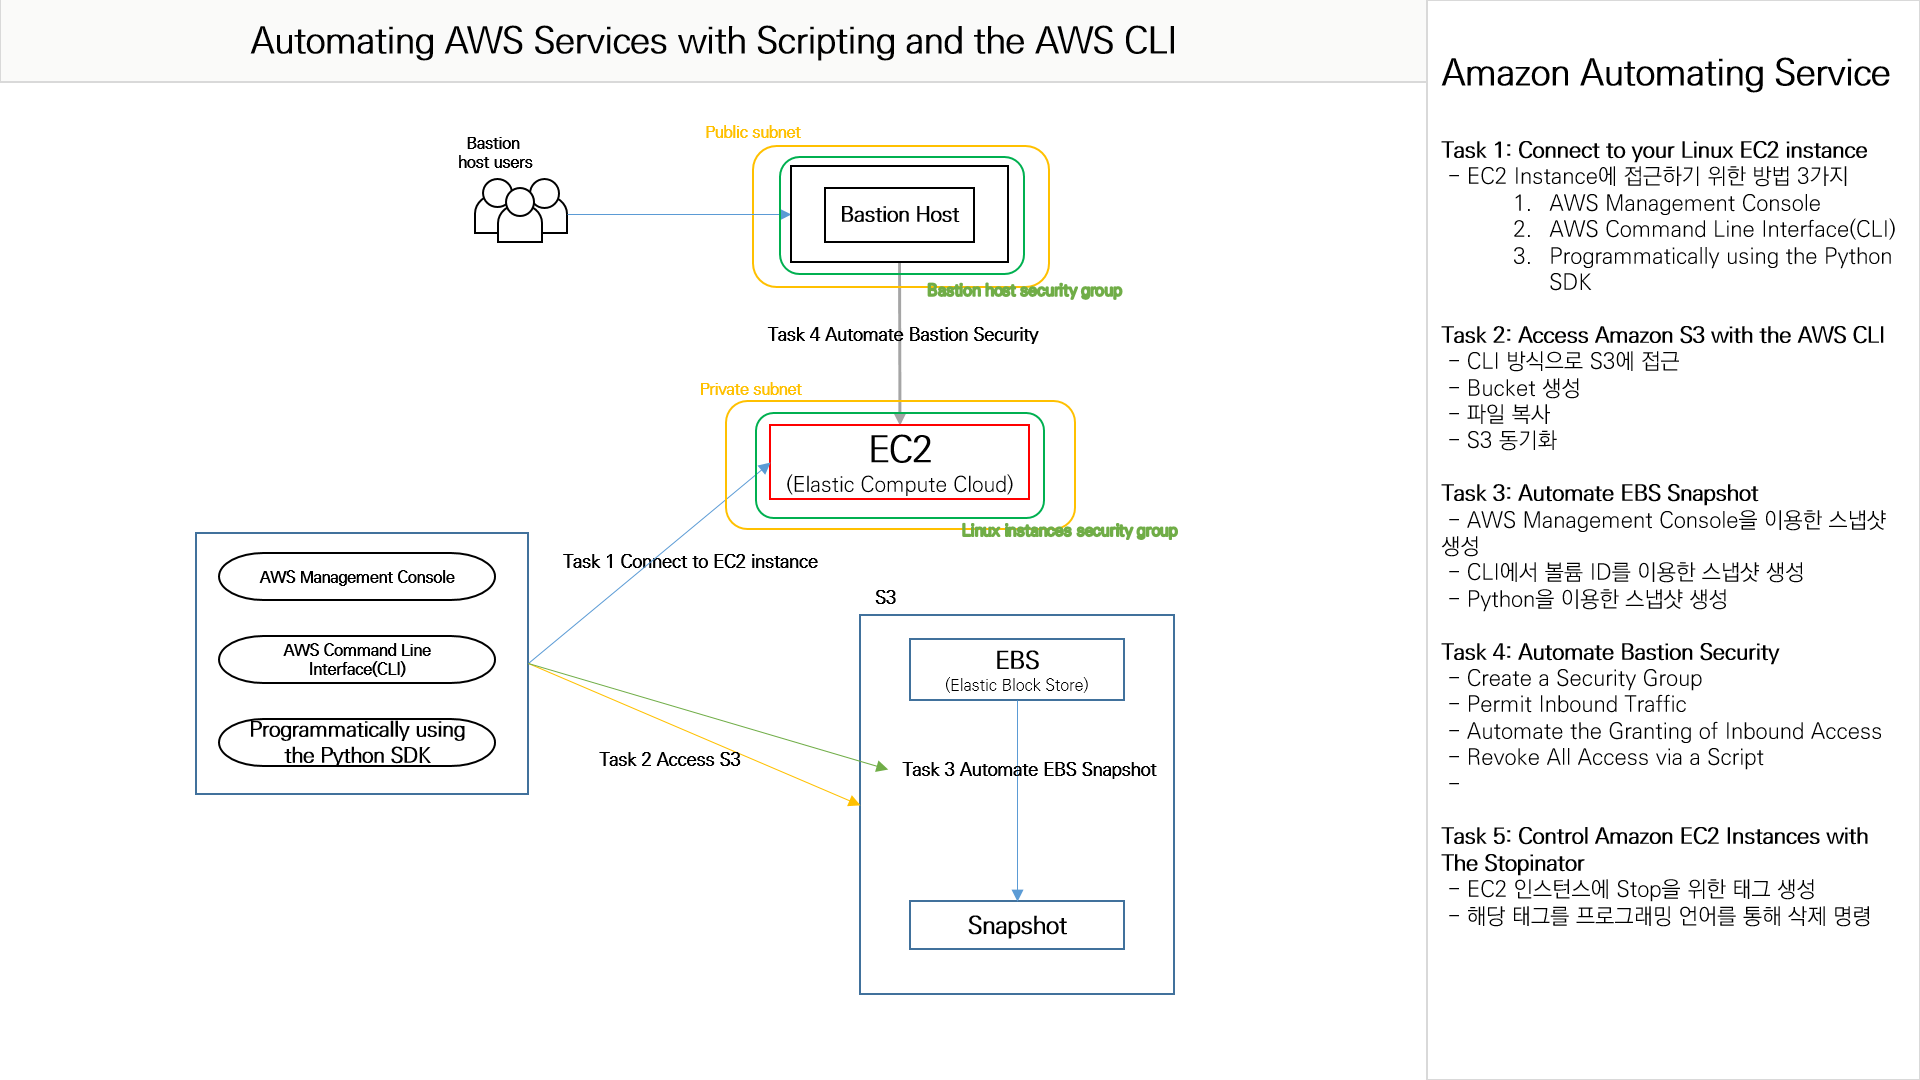 Hands-on-Labs] Automating AWS Services with Scripting and the AWS CLI